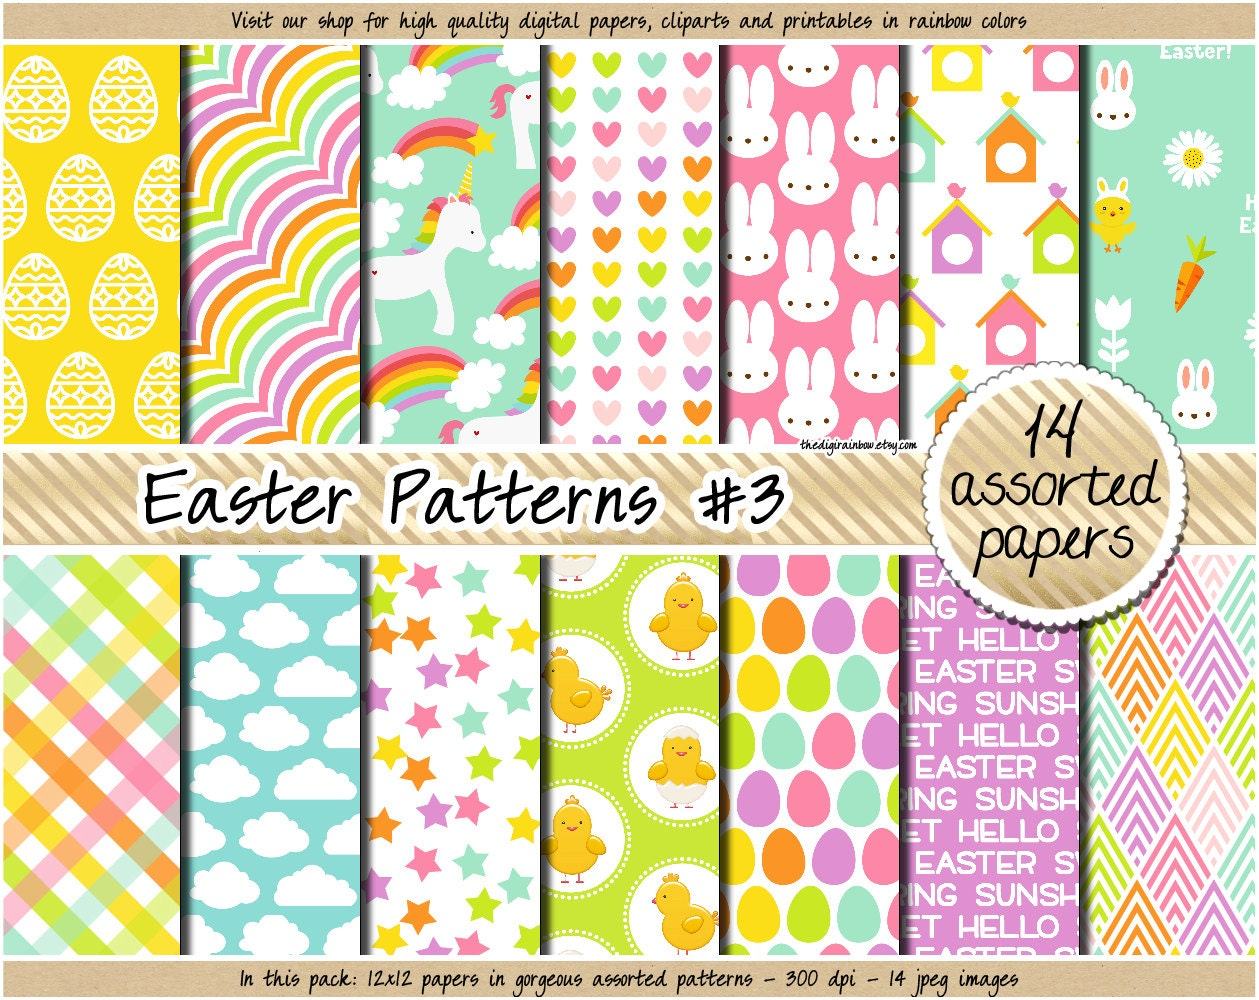 SALE Easter Digital Paper Unicorn Pastel Clipart Bunny Carrot Chick Egg Stars Heart Plaid Candy Pattern